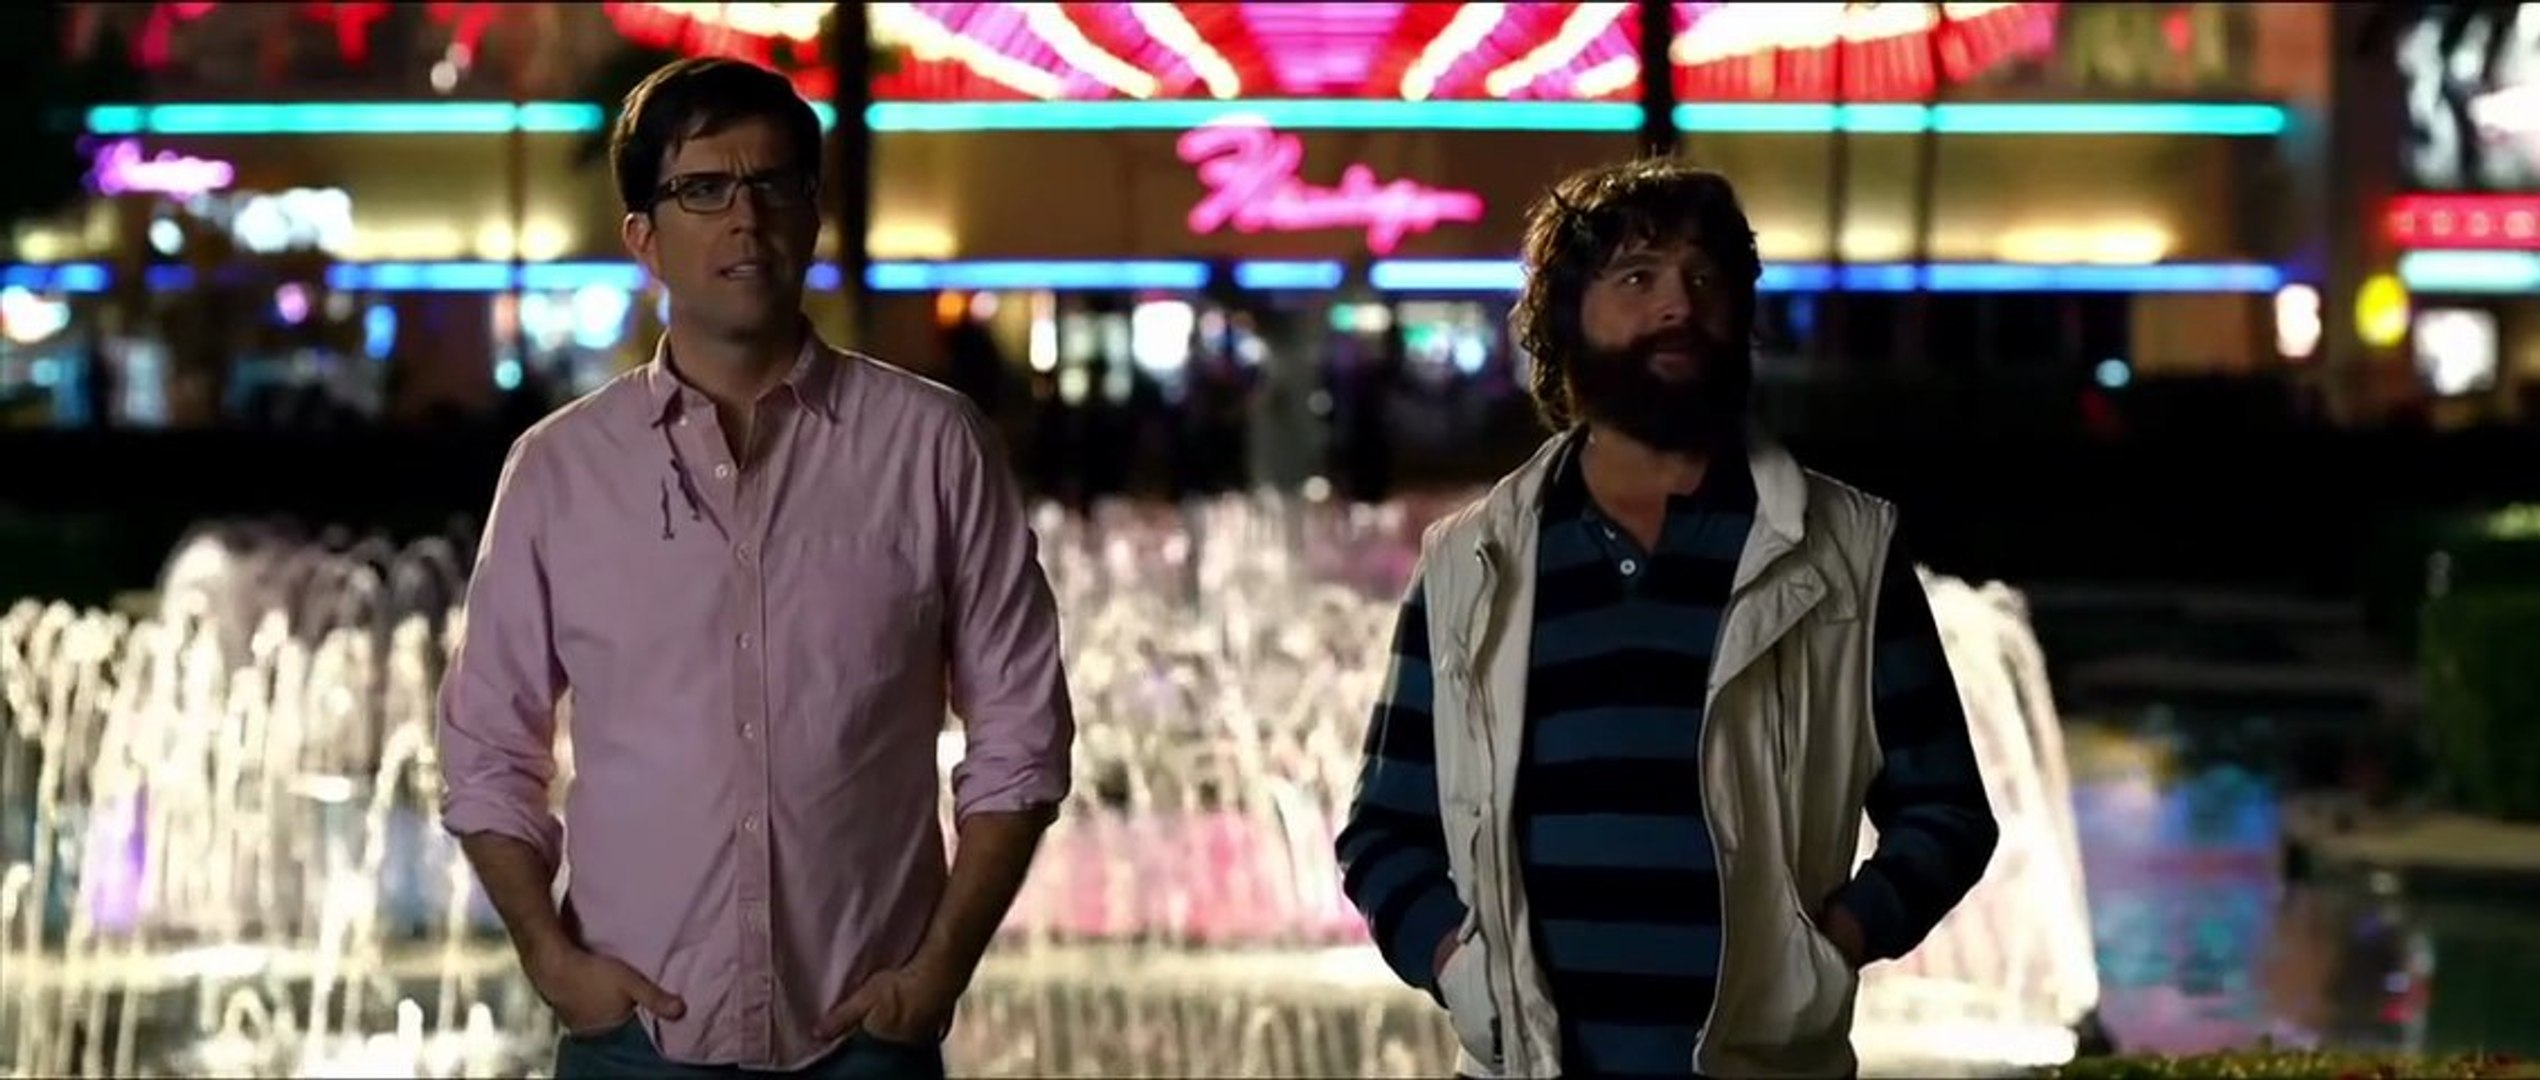 The Hangover Part III (2013) - TV Spot #2 [VO-HD]